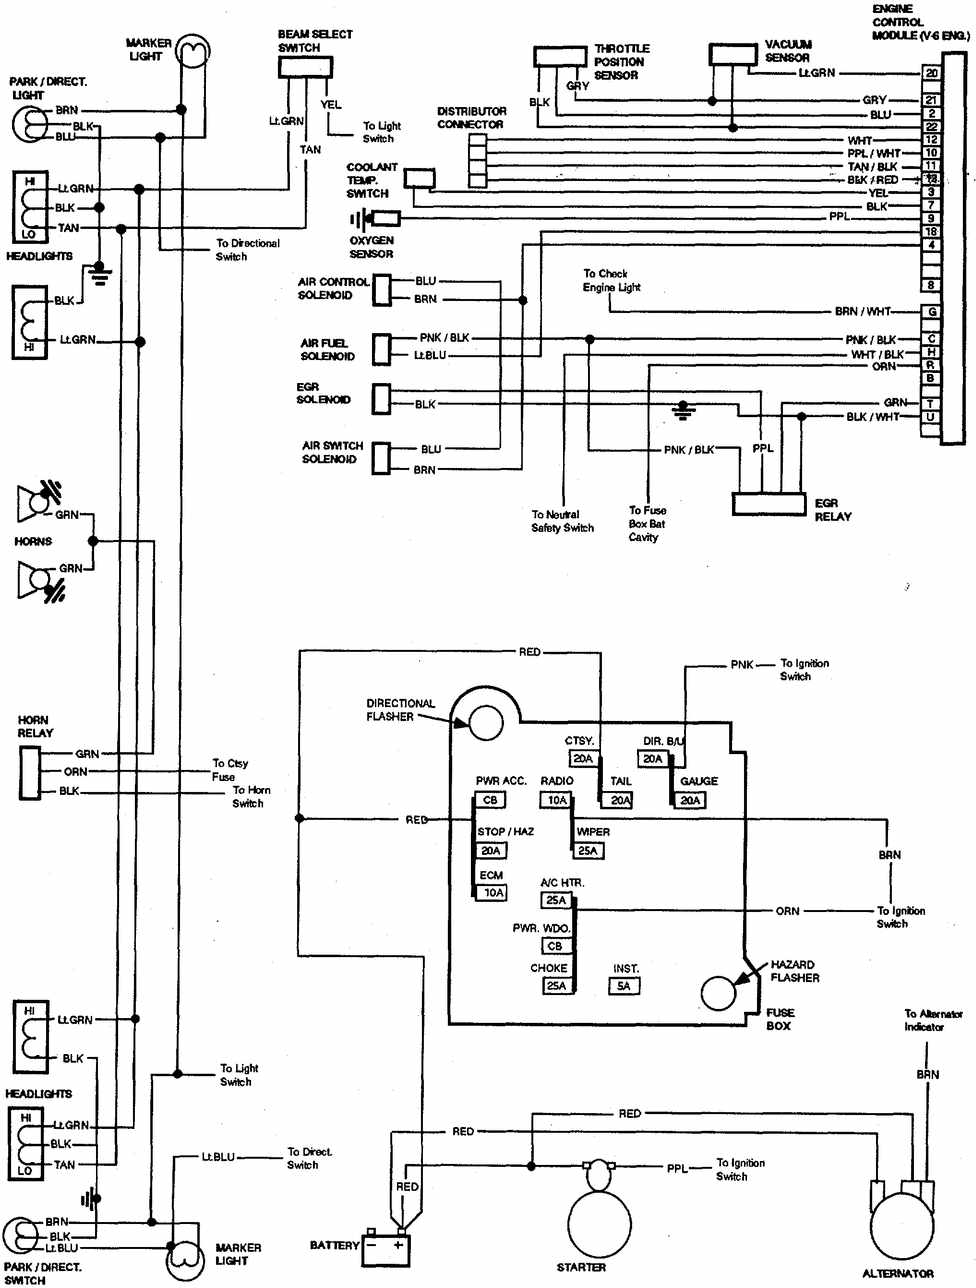 1986 chevy truck wiring diagram for trailer